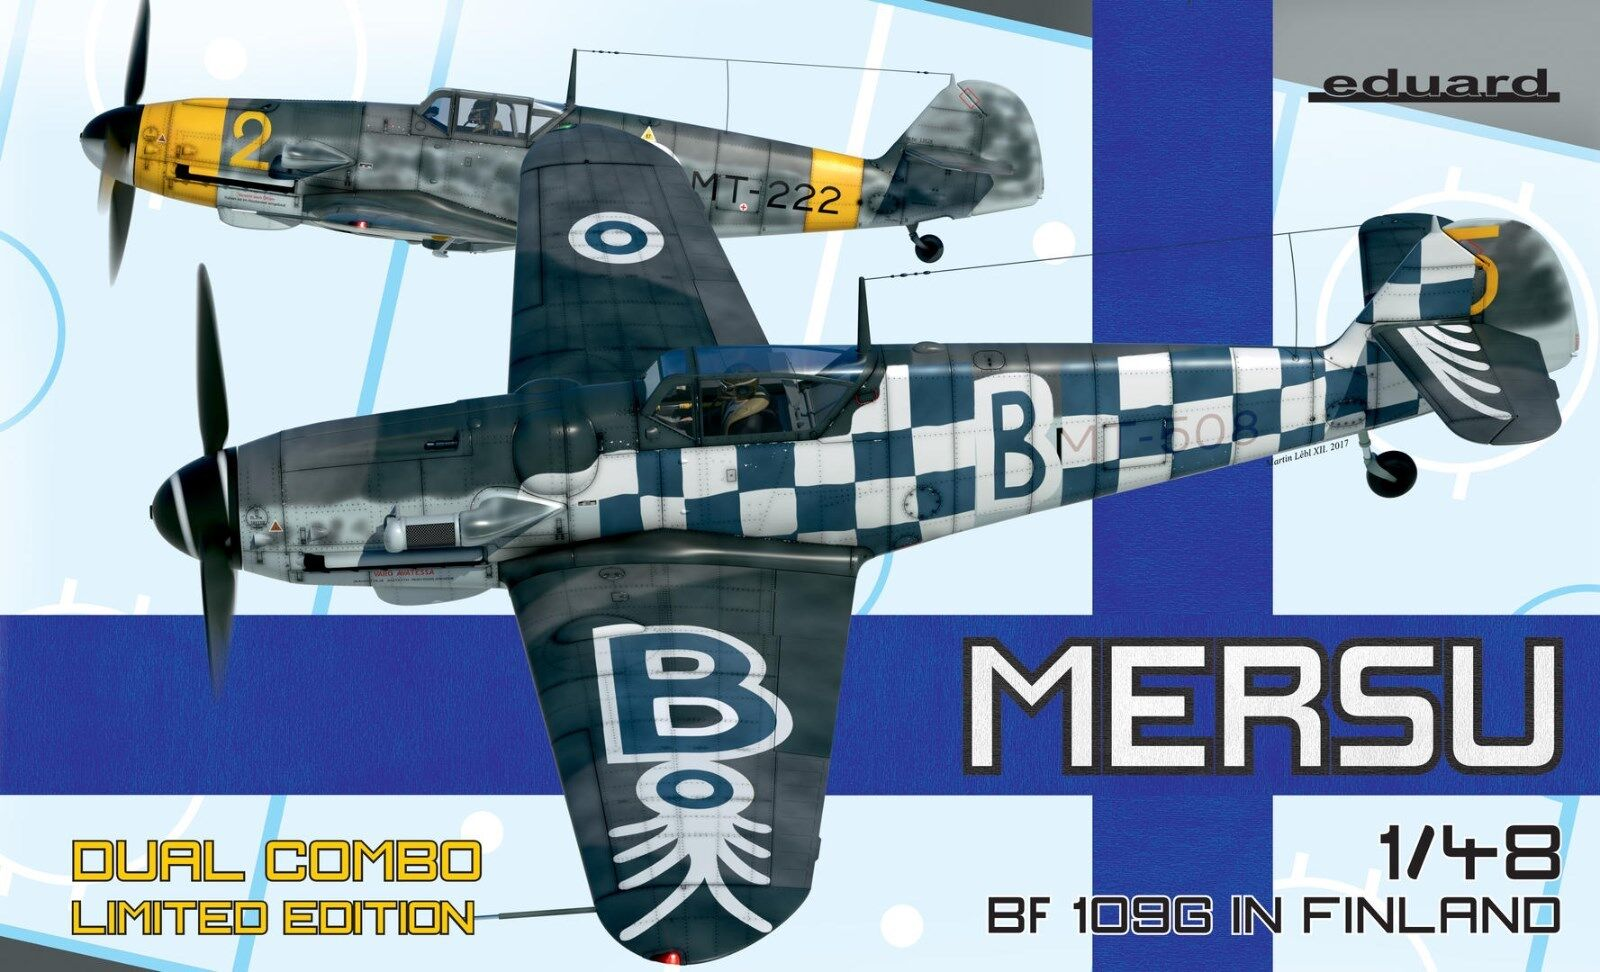 Eduard 11114 1 48th scale LTD Ed WWII fighter Bf 109G in Finnish air force Combo